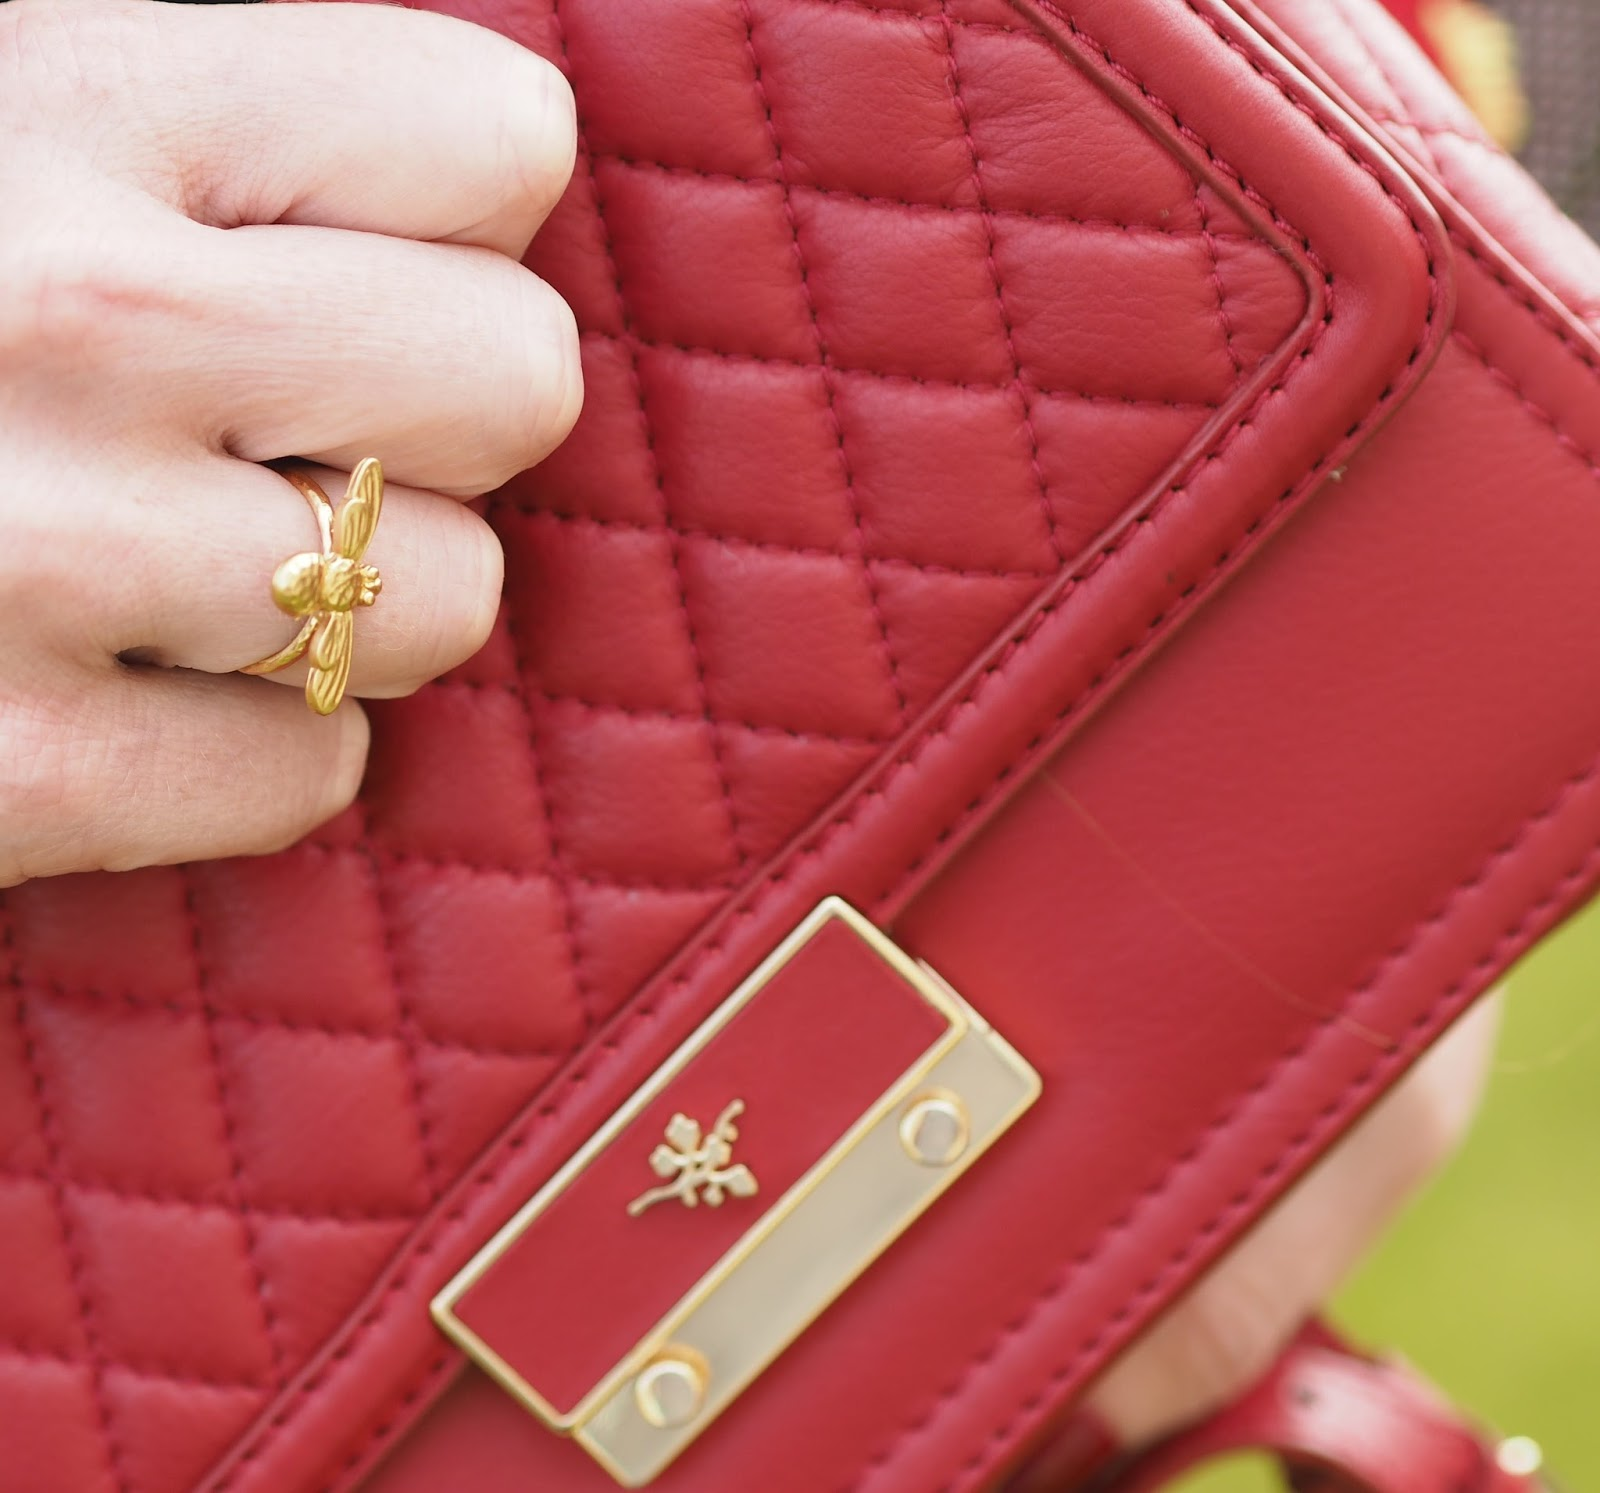 Fiona cross body quilted bag, Ilex London. Gold honey bee ring